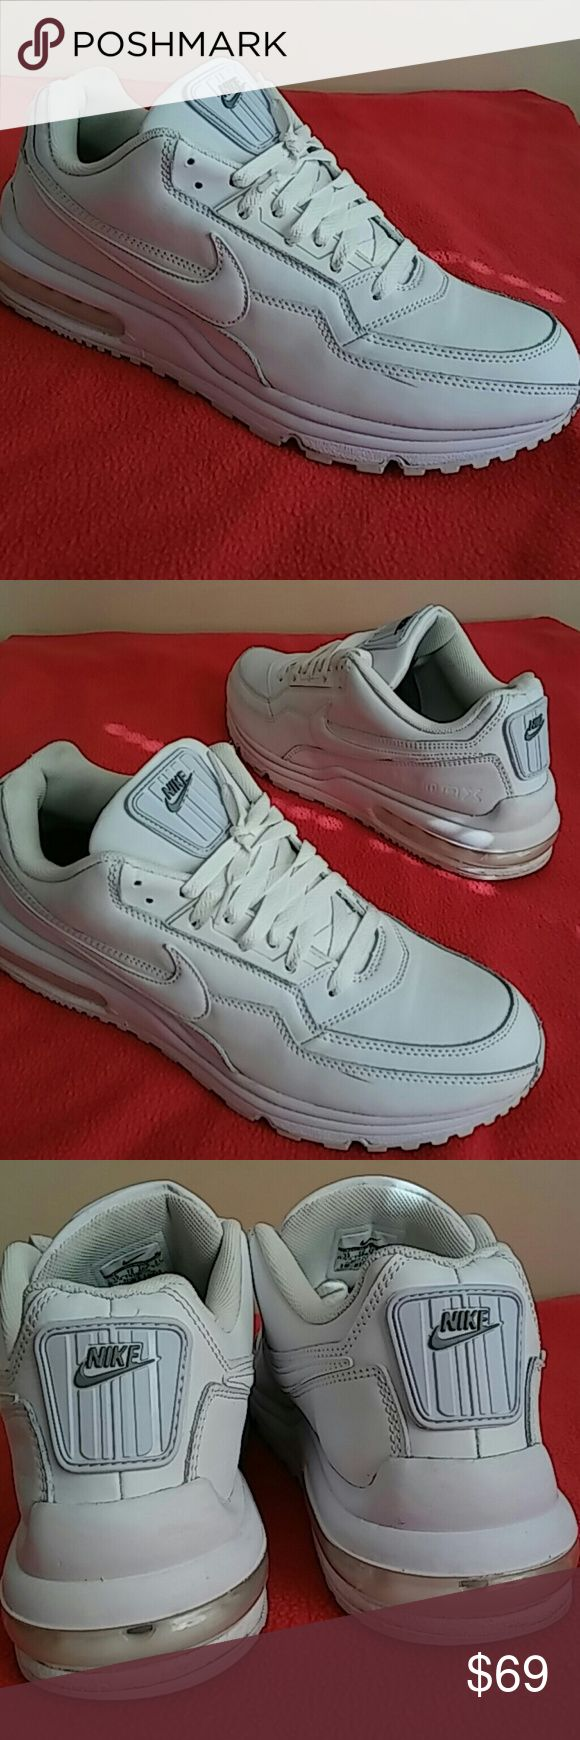 Nike Air Max LTD ..Size 13 MEN Purchased this some 3 months ago for $102 and worn them between 8-11 times. Shoes is rated 9/10 as only undersoles shows signs of use. Shoes is stainless, no dirt or greasing. ..Clean and bright all white. Nike Shoes Sneakers